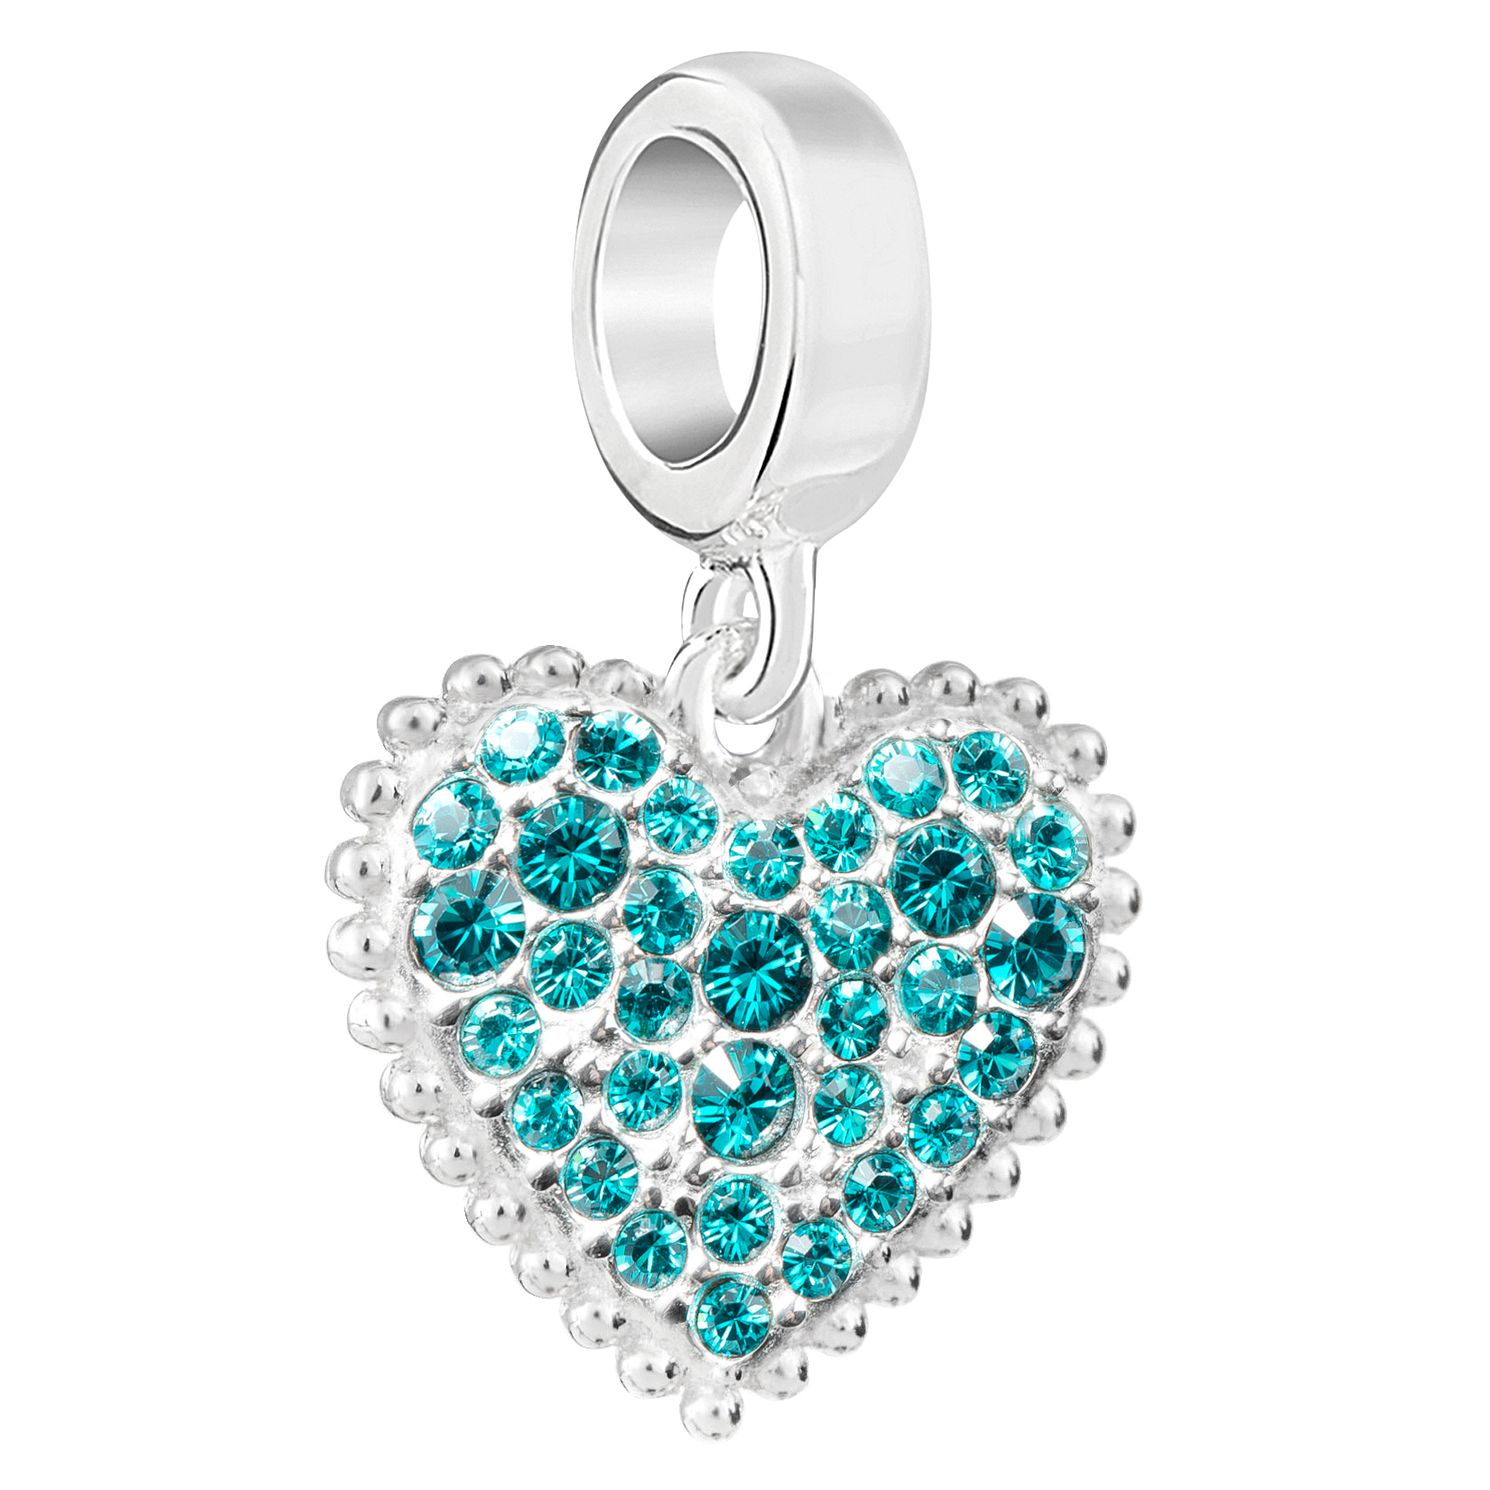 Chamilia With Love December Charm with Swarovski Crystal - Product number 6893457